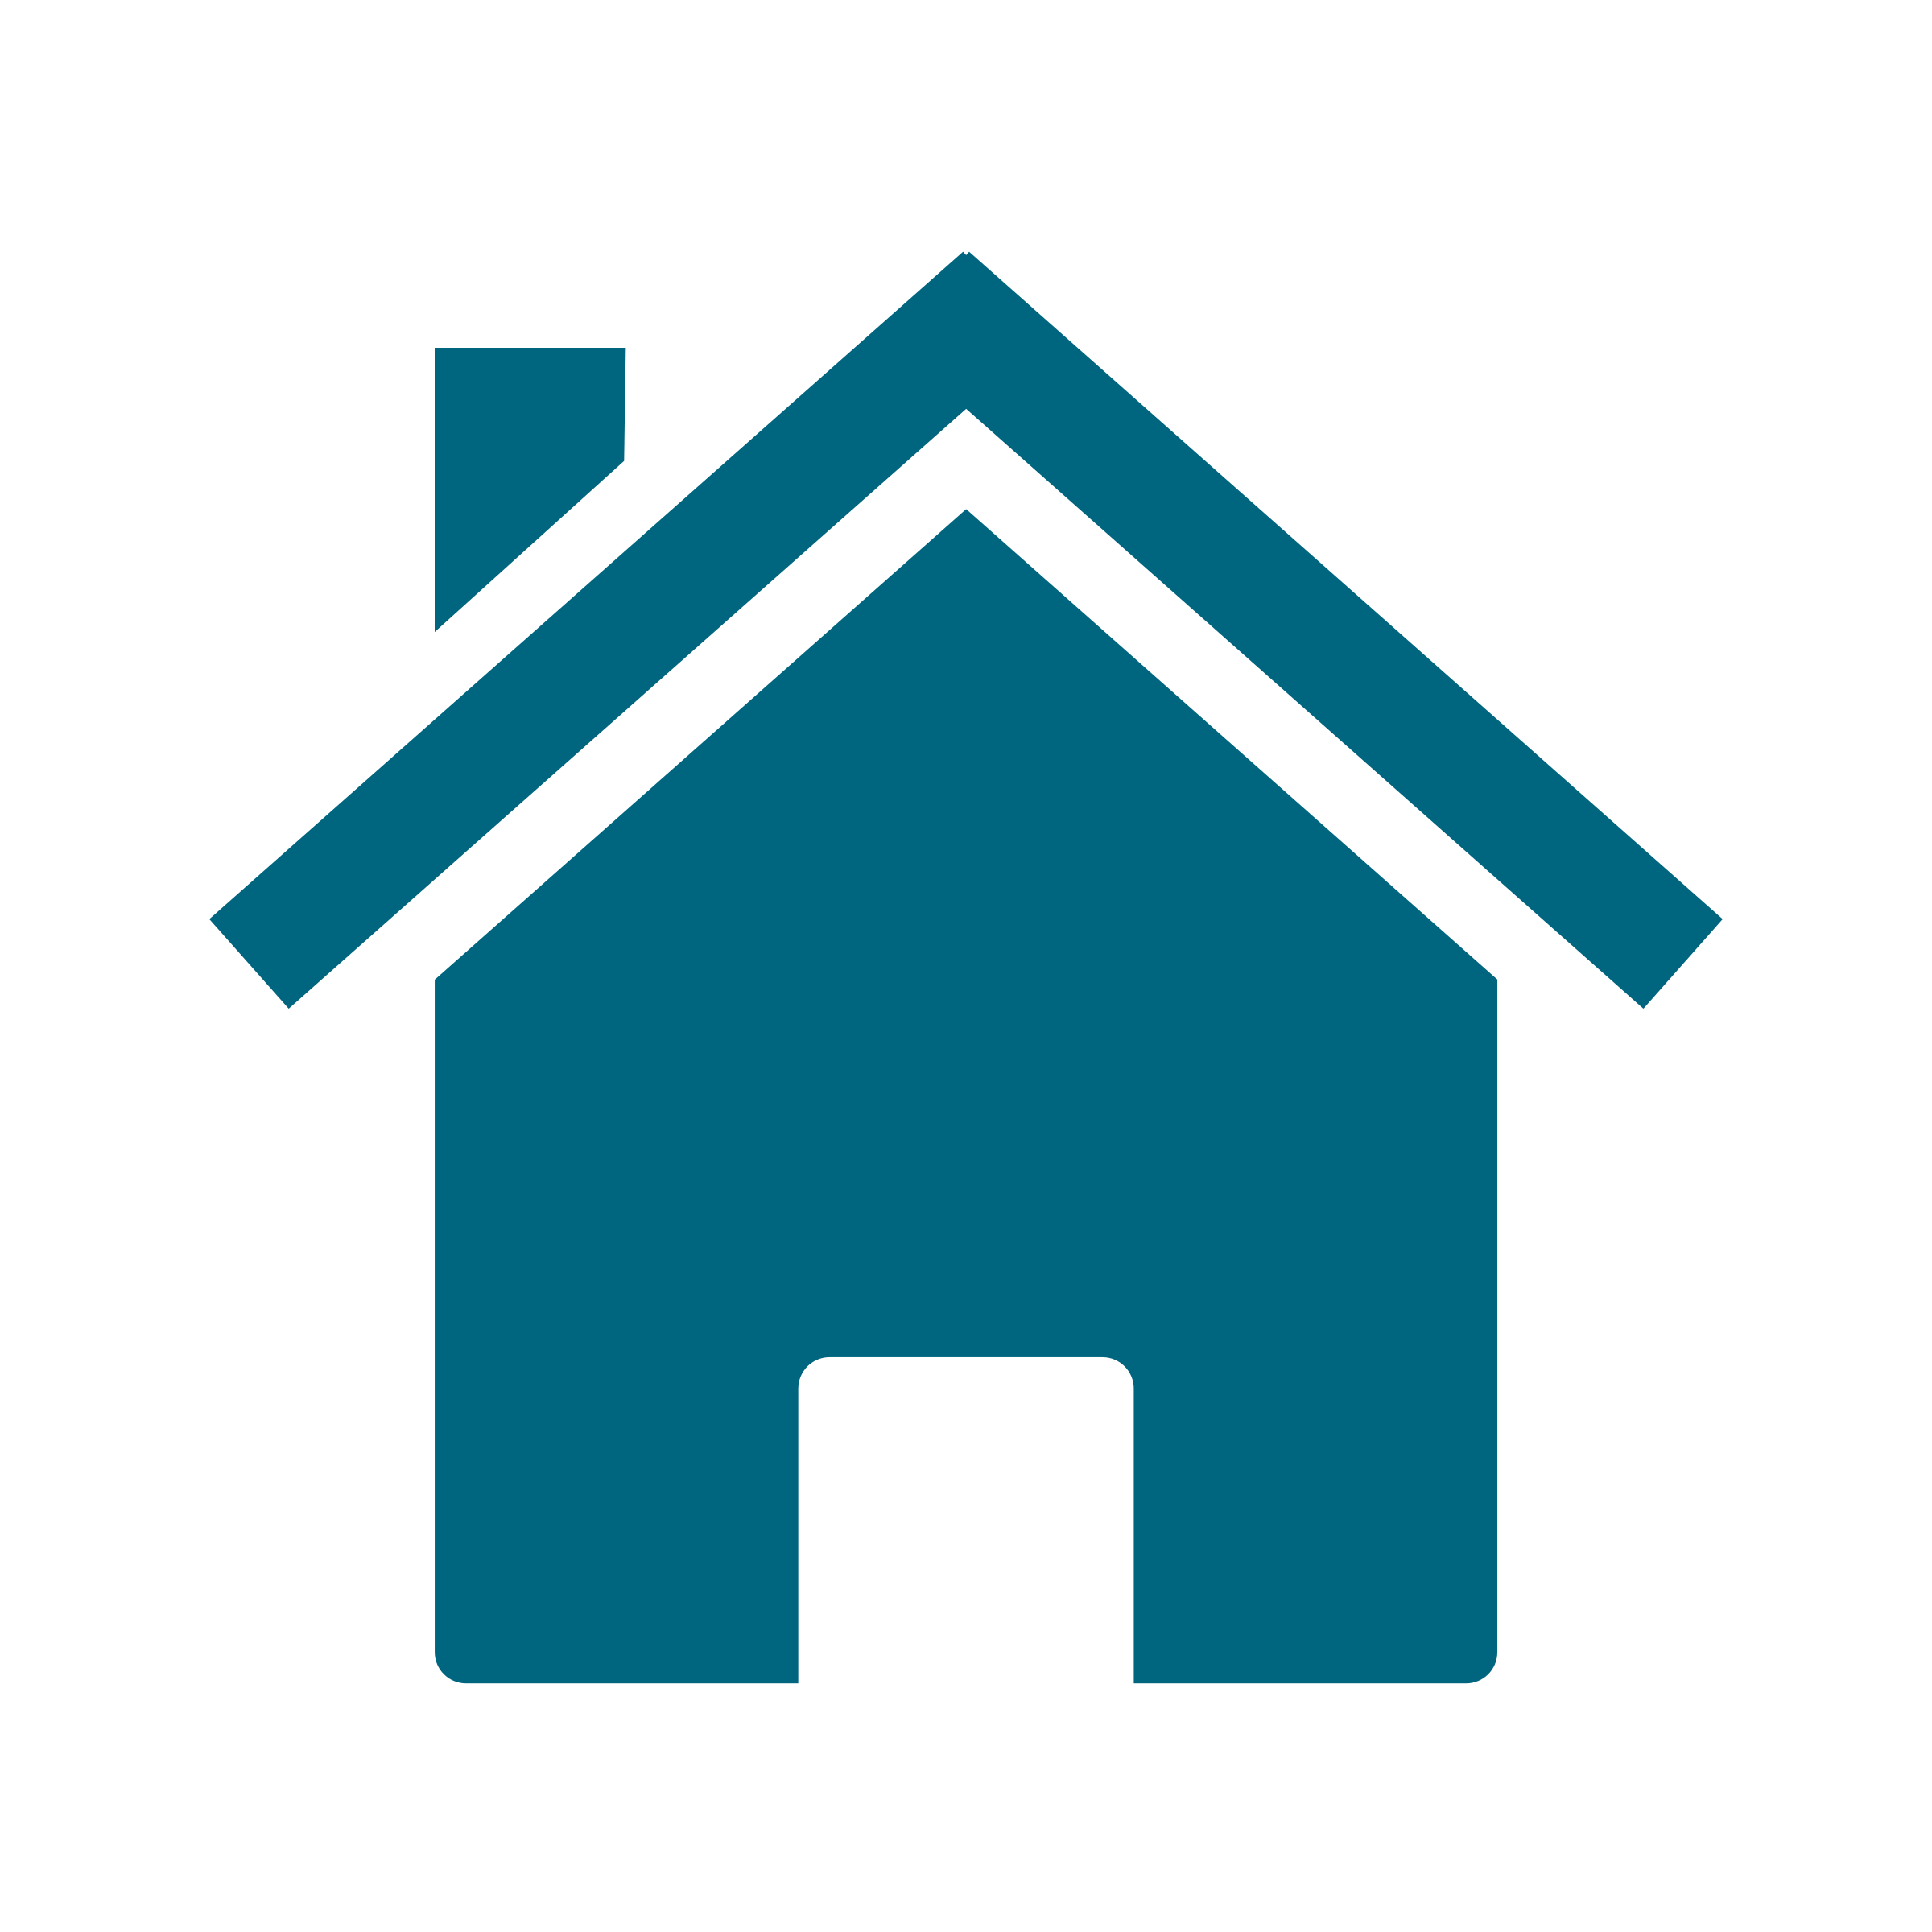 Homes vector. Png hd of transparent